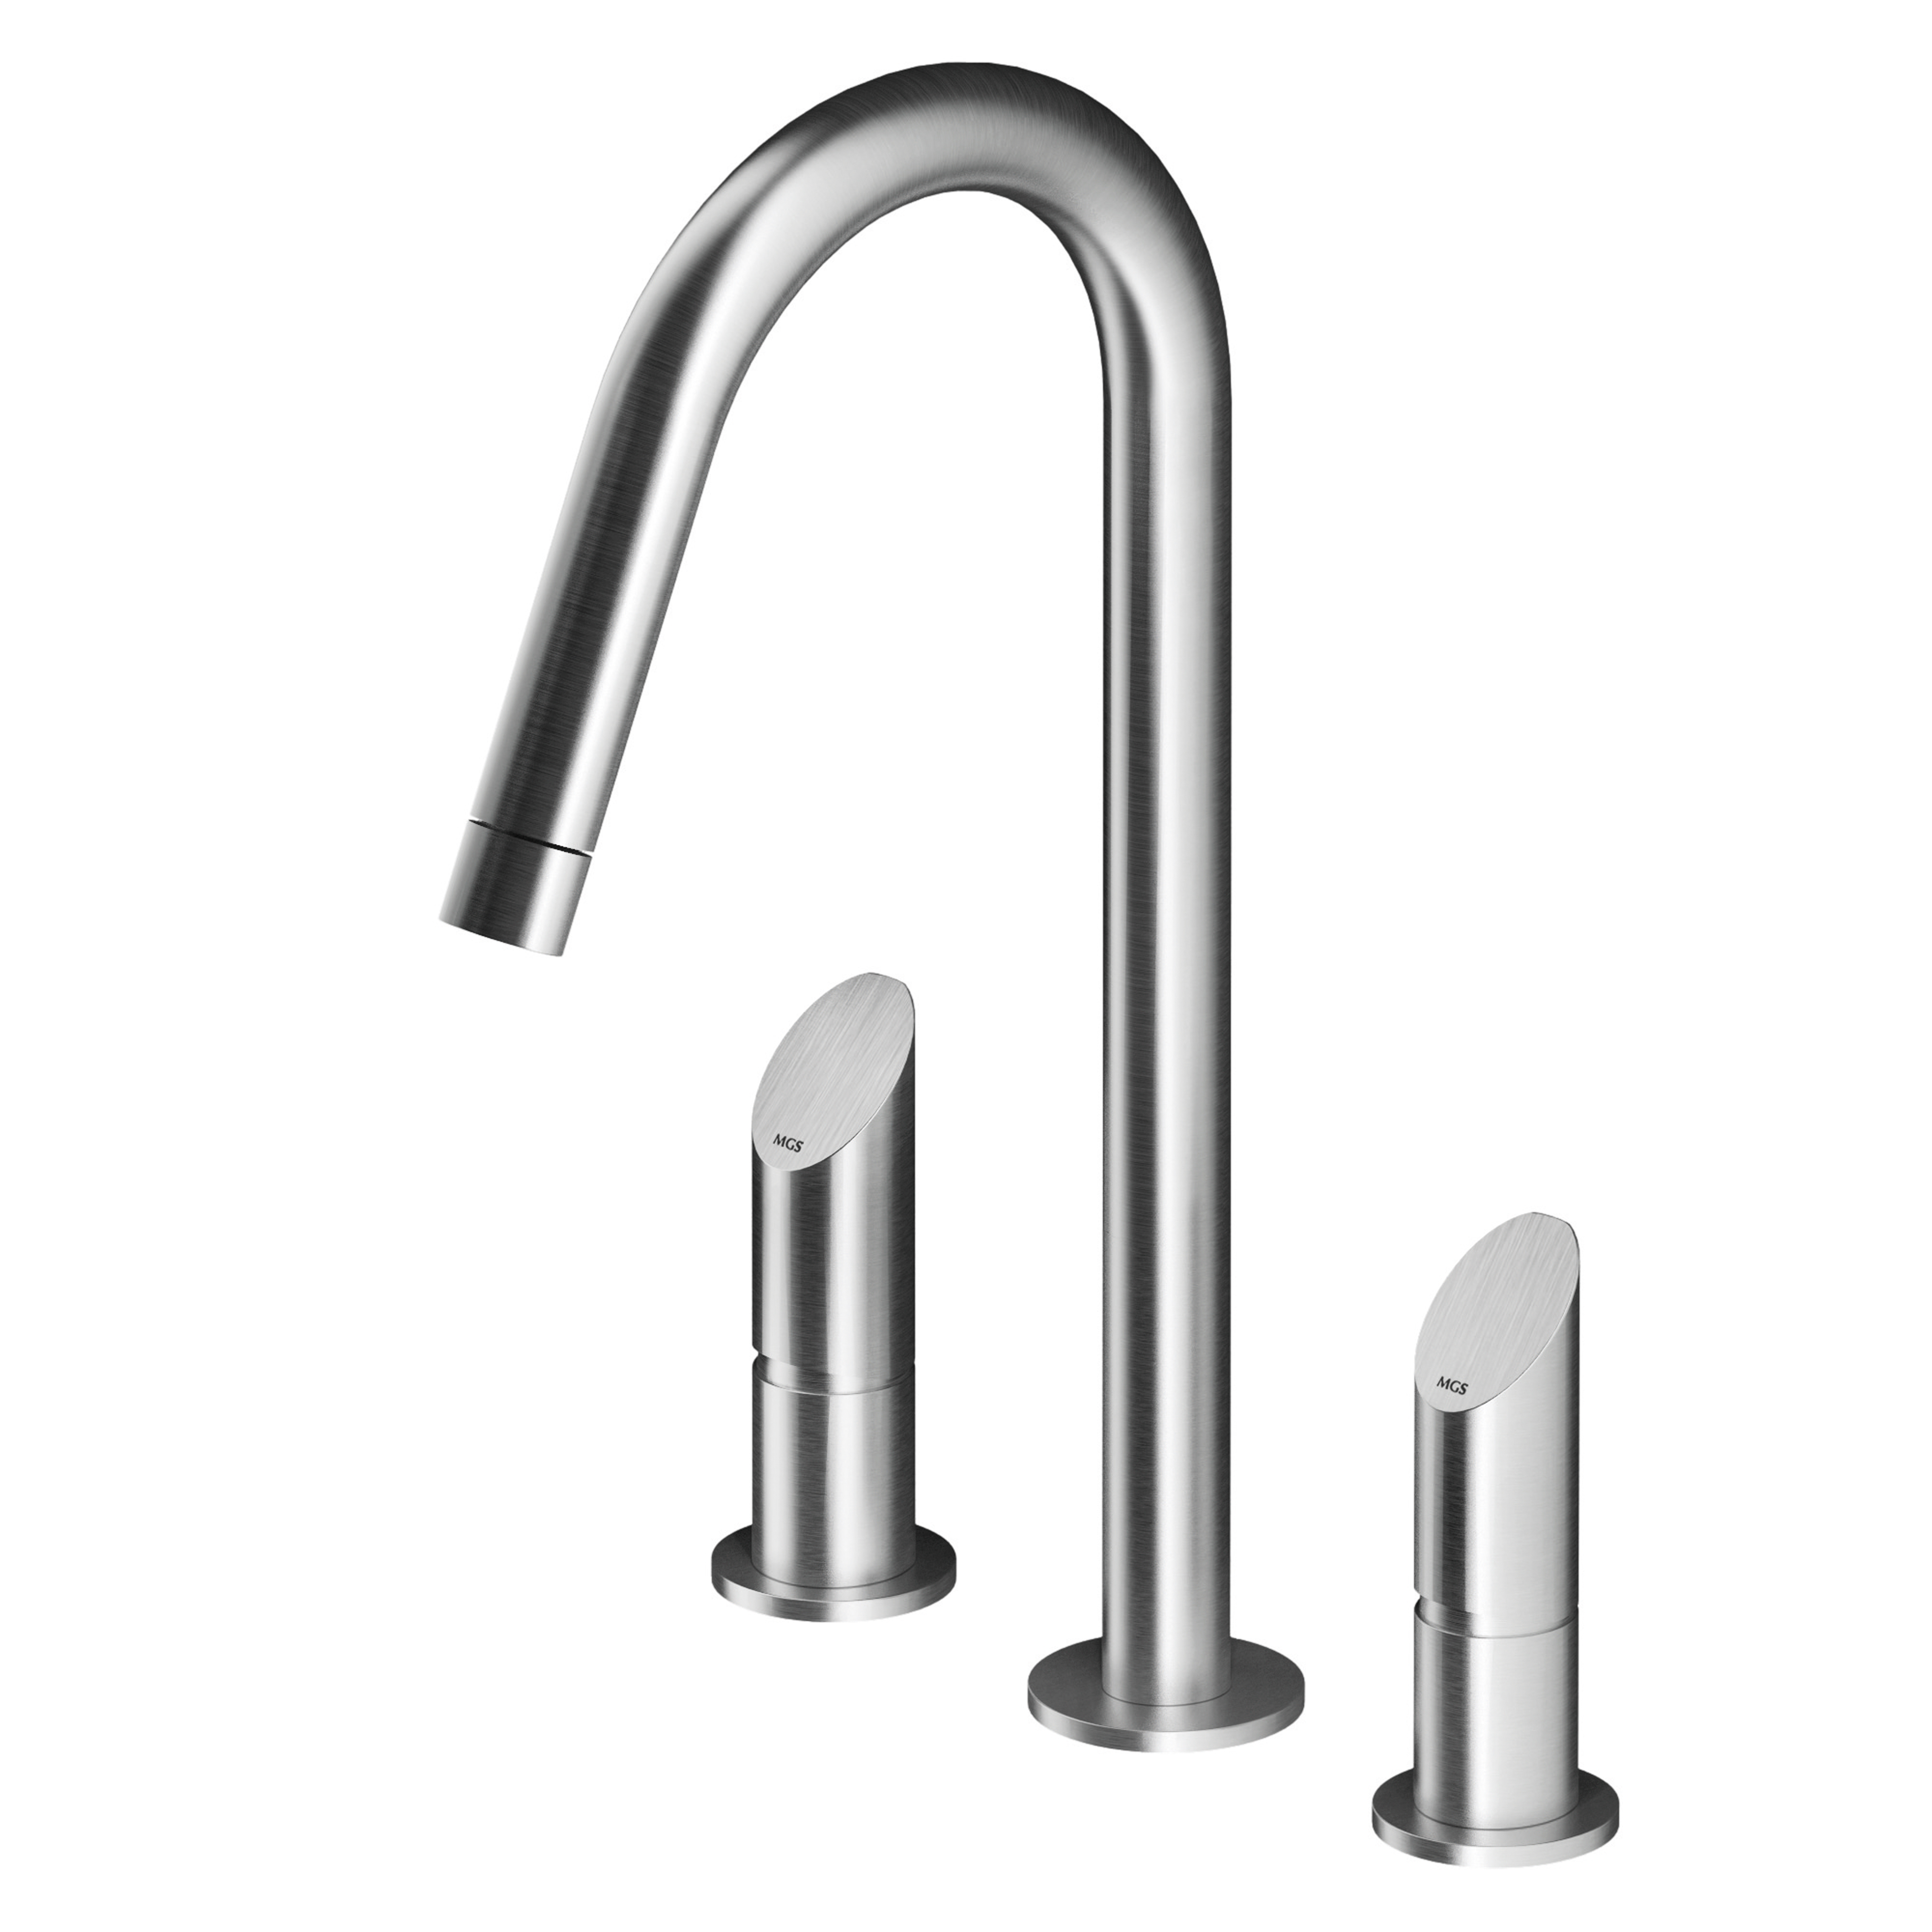 MGS CB200 Widespread Faucet with High Spout - matte stainless